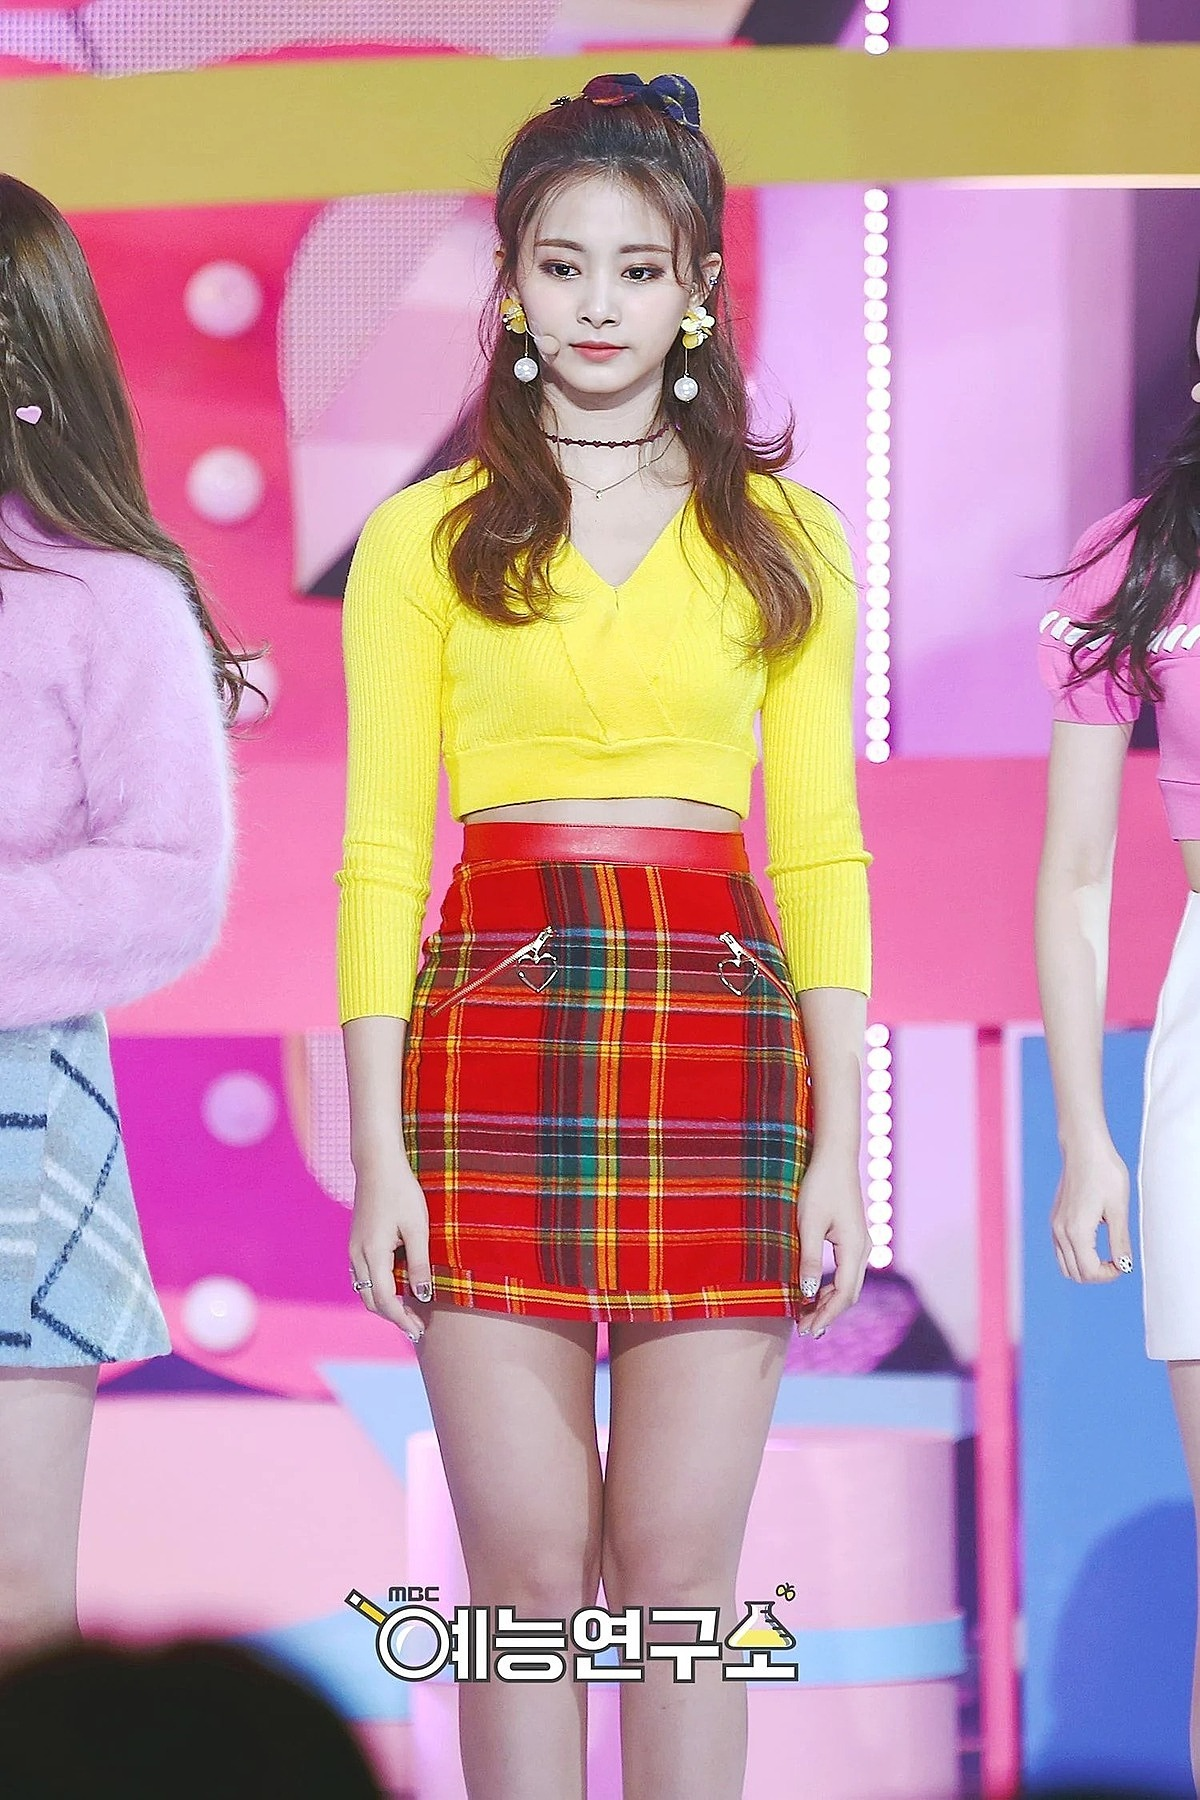 he crop top from Forever 21 cost £16.00 GBP (around $20.00 USD) while the check mini skirt from Chuu cost $32.00 USD.